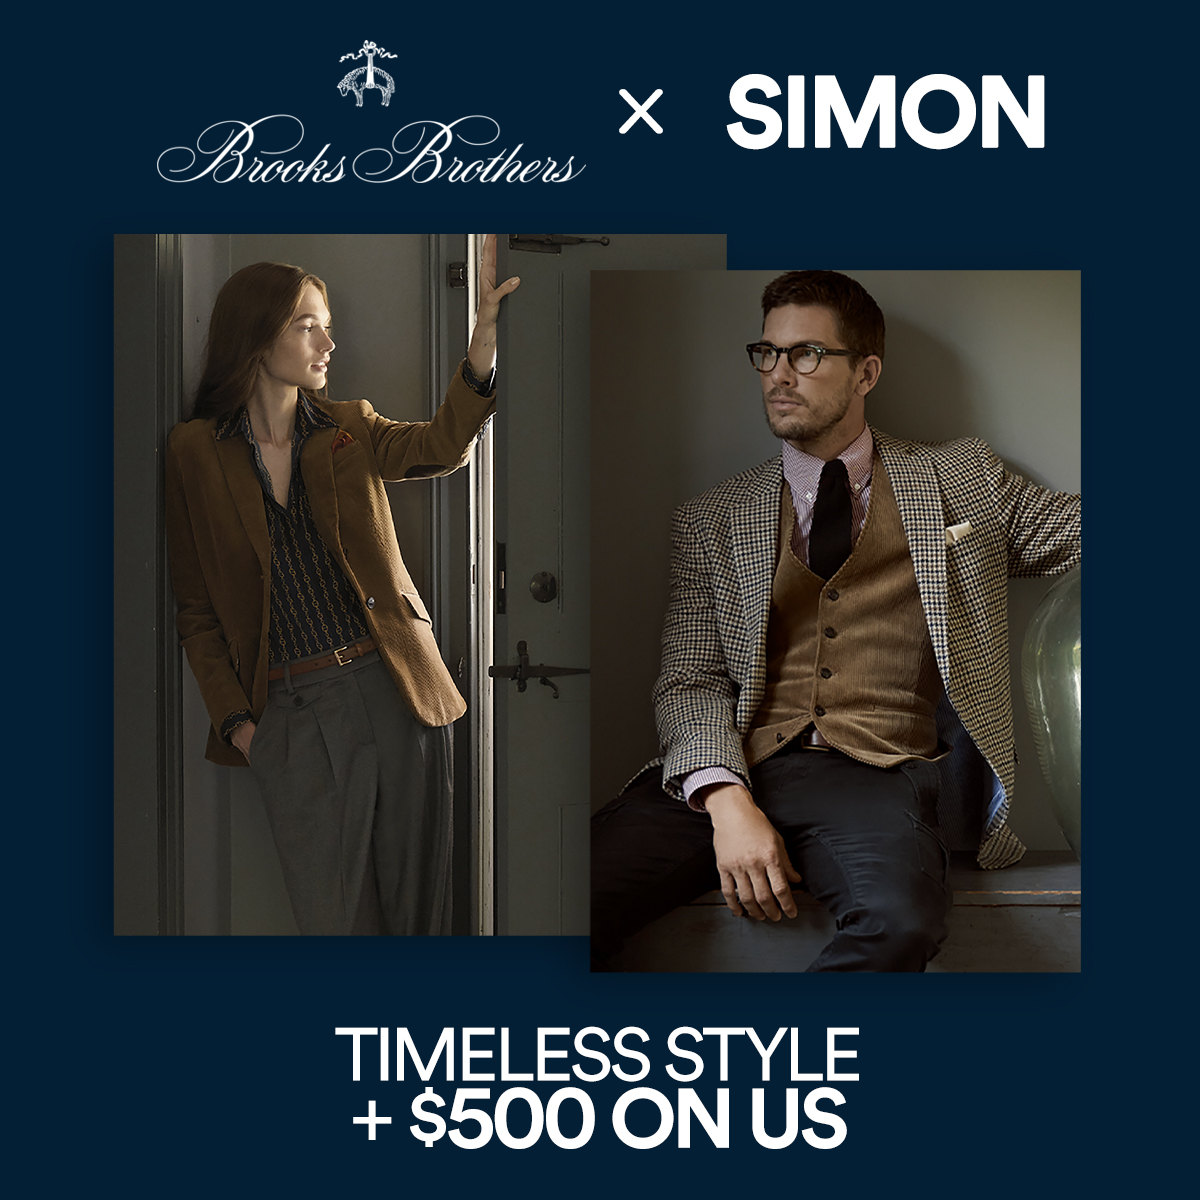 Brooks Brothers Sweeps - promo spot image